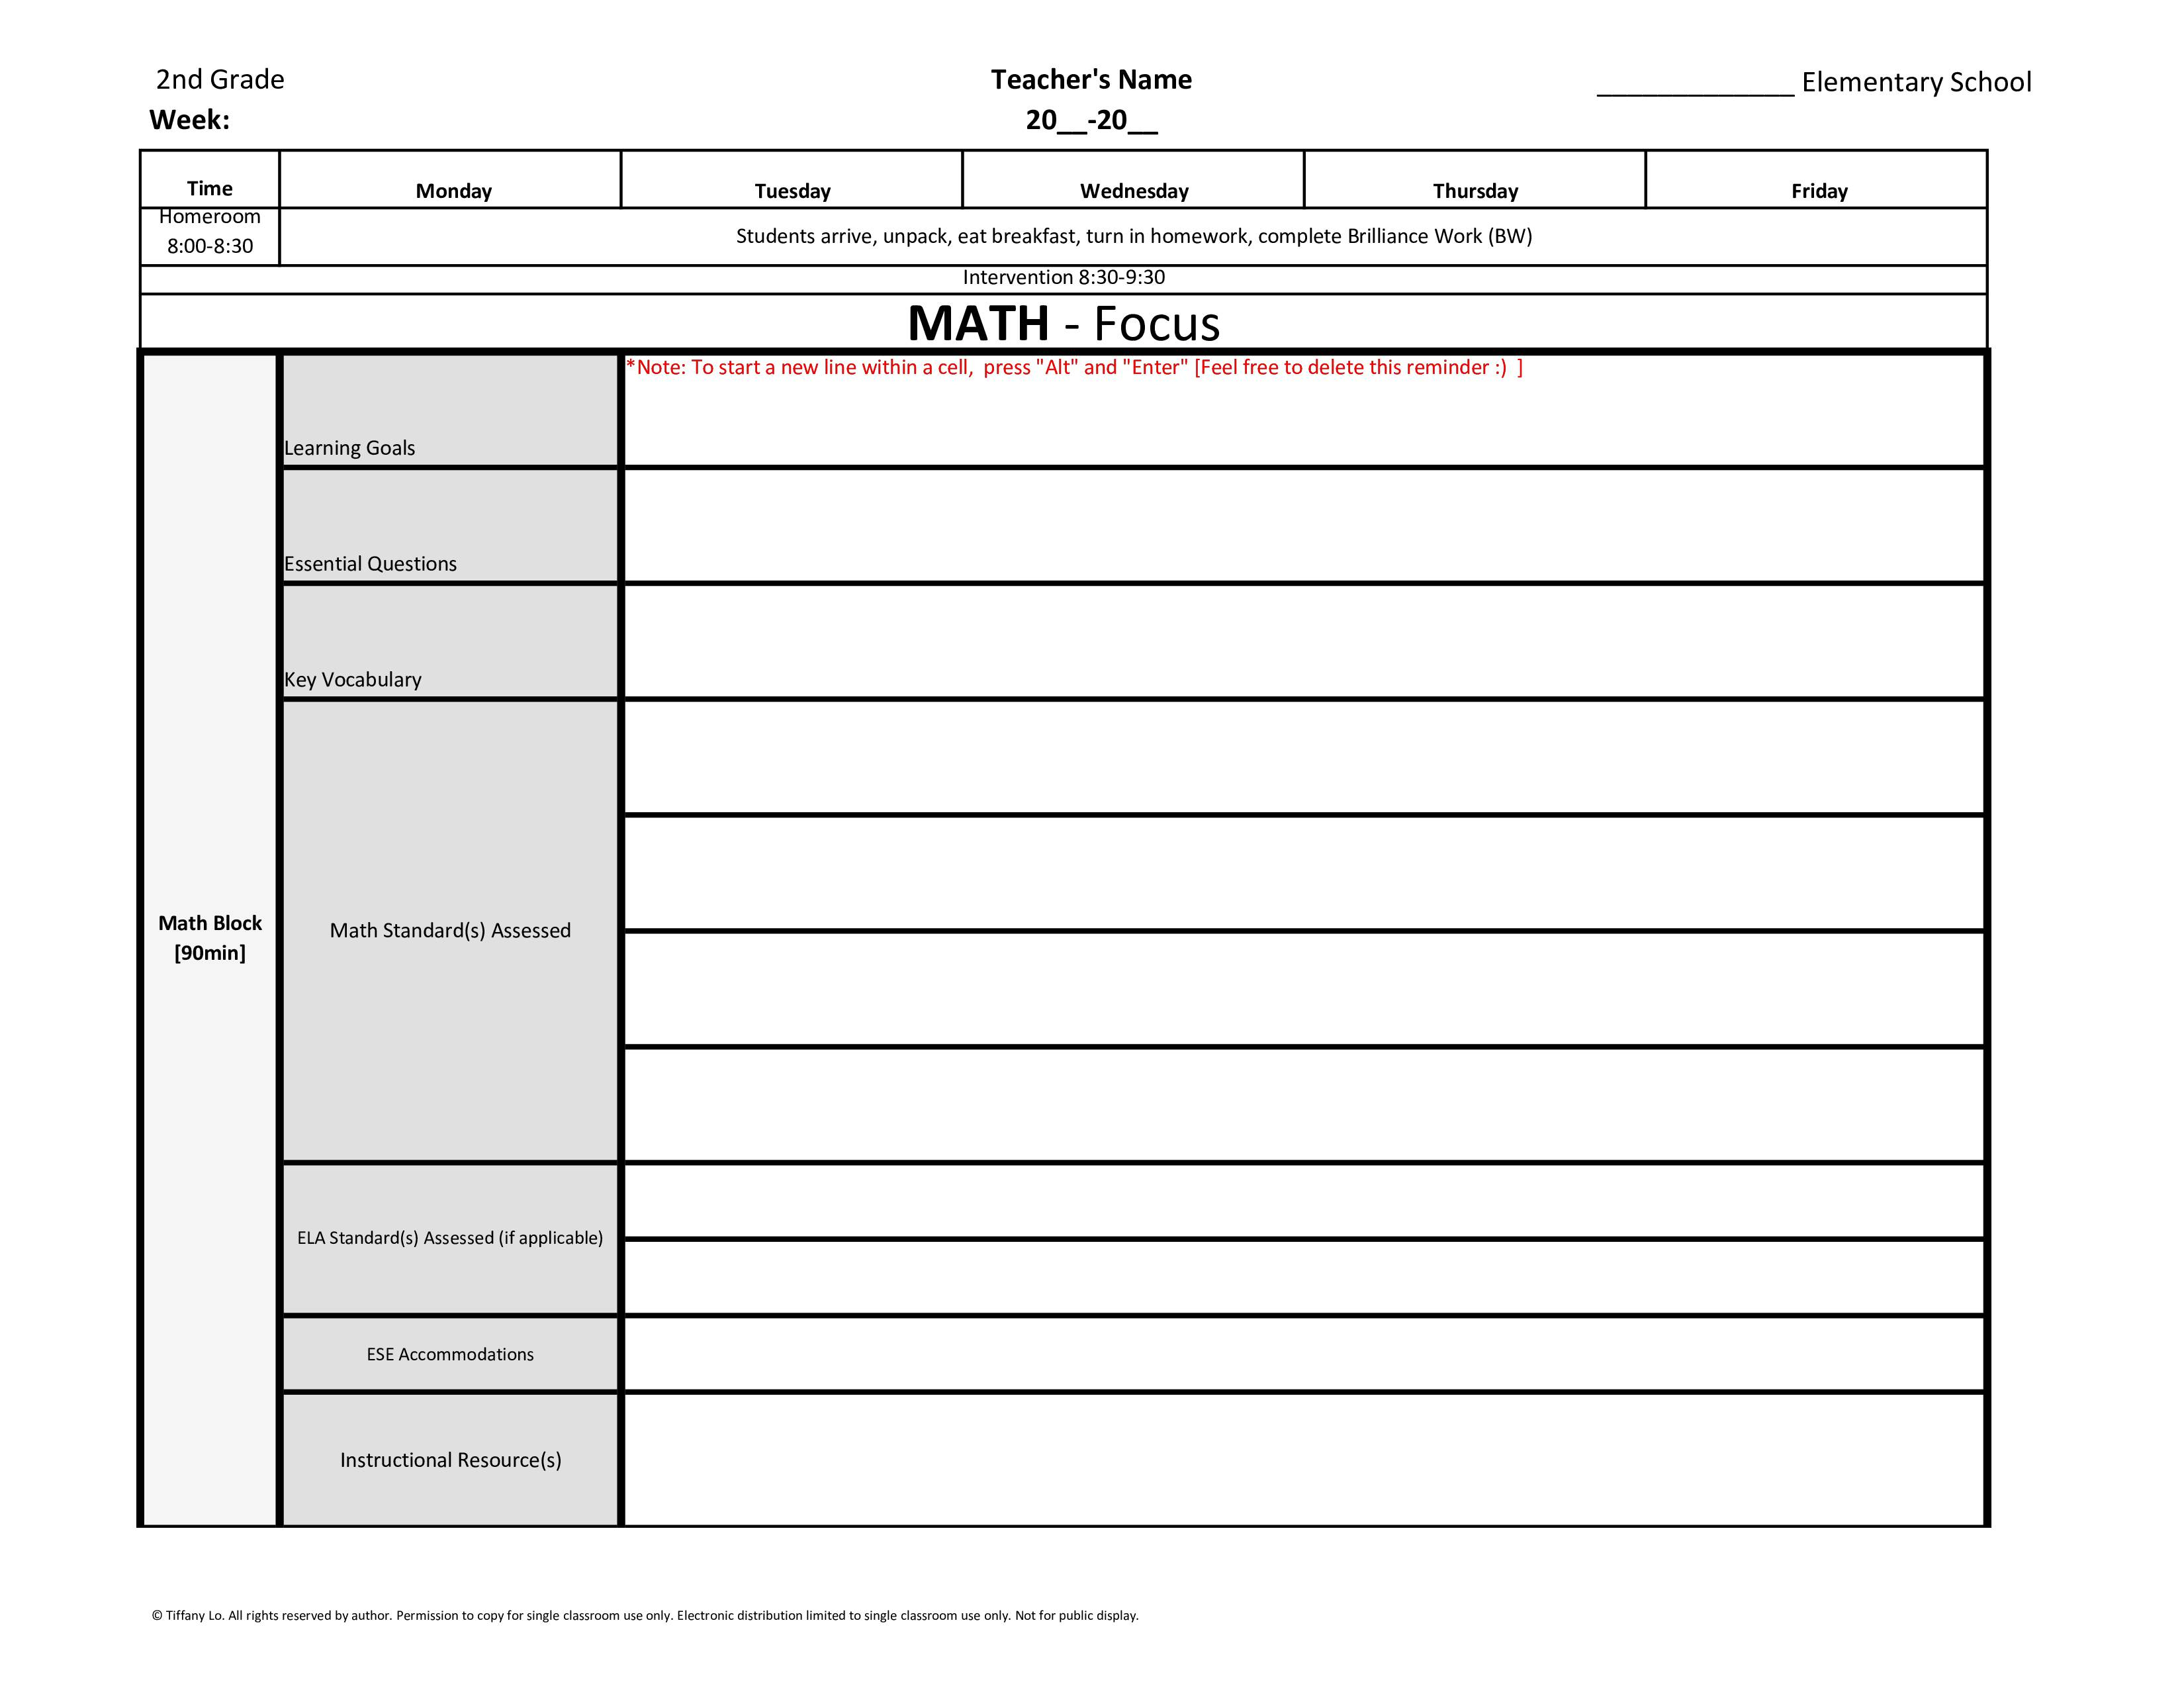 2Nd Second Grade Common Core Weekly Lesson Plan Template W/ Drop Down Lists with Tutoring Template To Fill Out Weekly